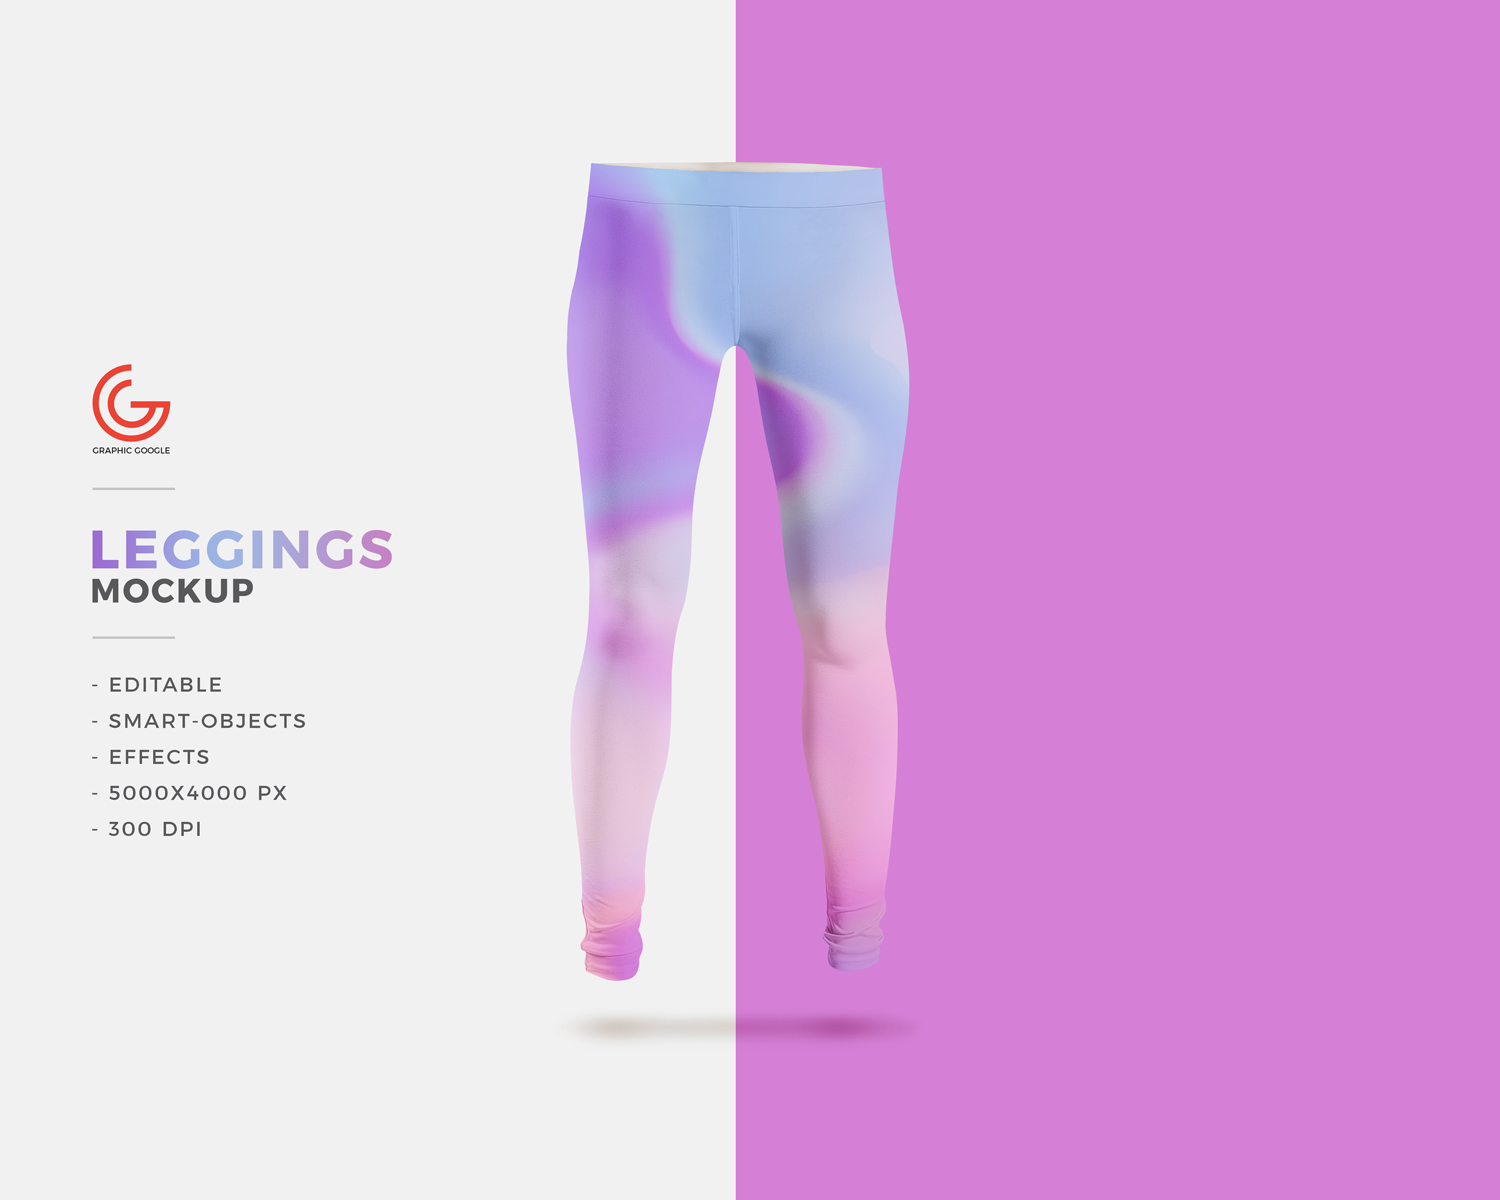 Free-Leggings-Mockup-PSD